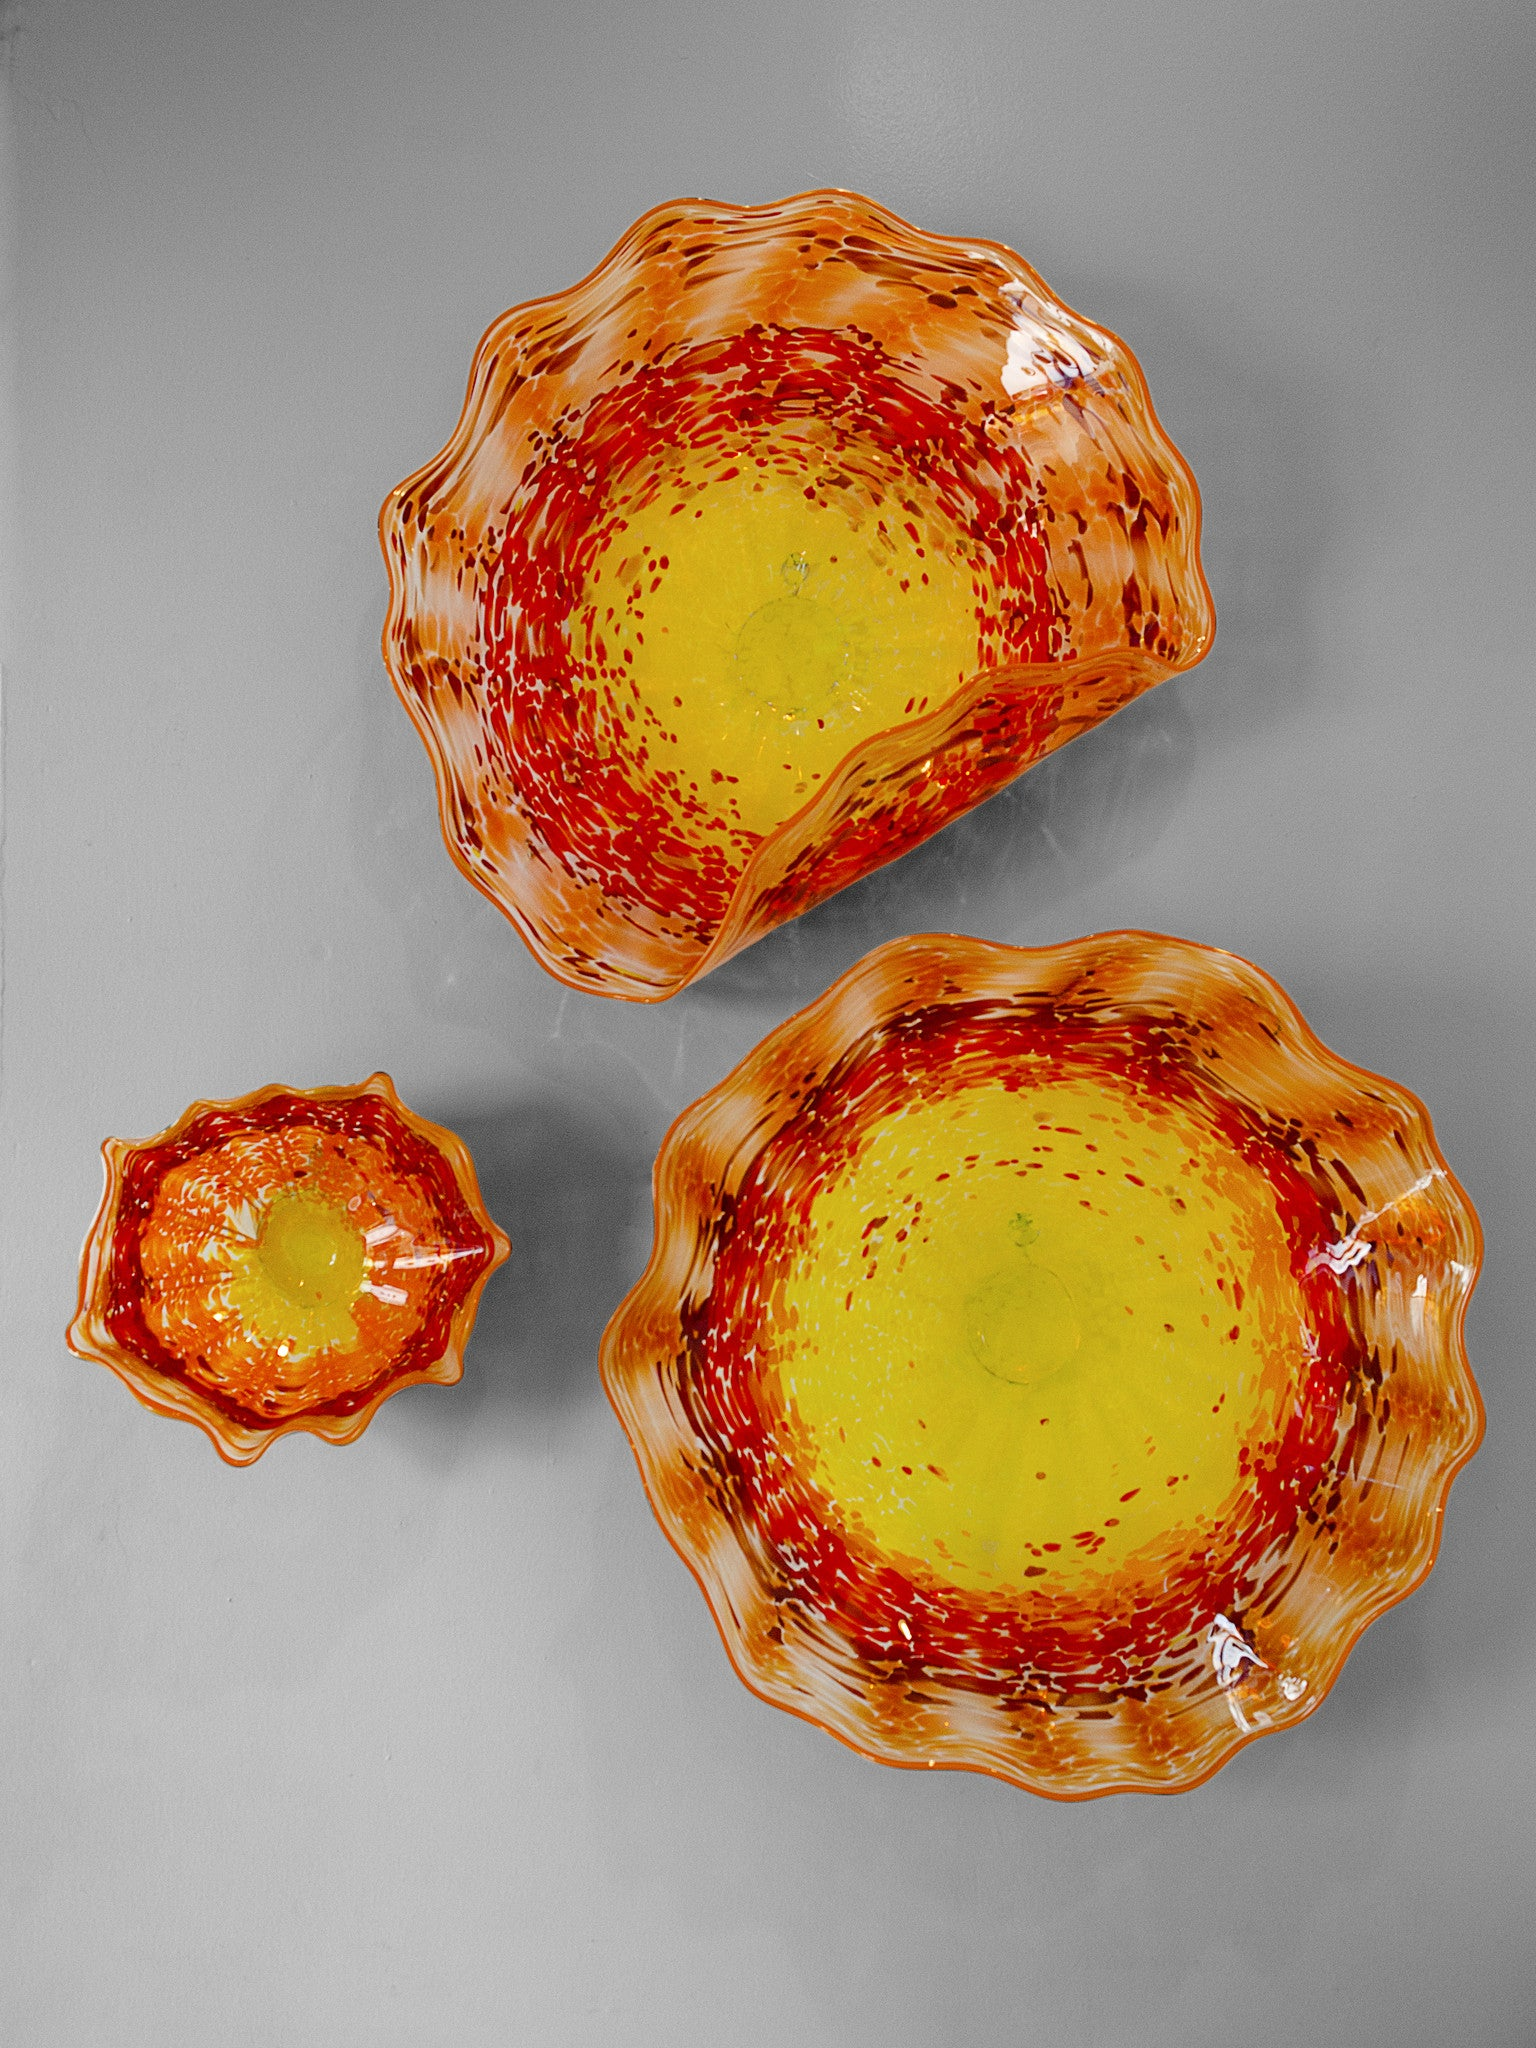 Wall platter collection in various sizes with yellow, orange and red colors